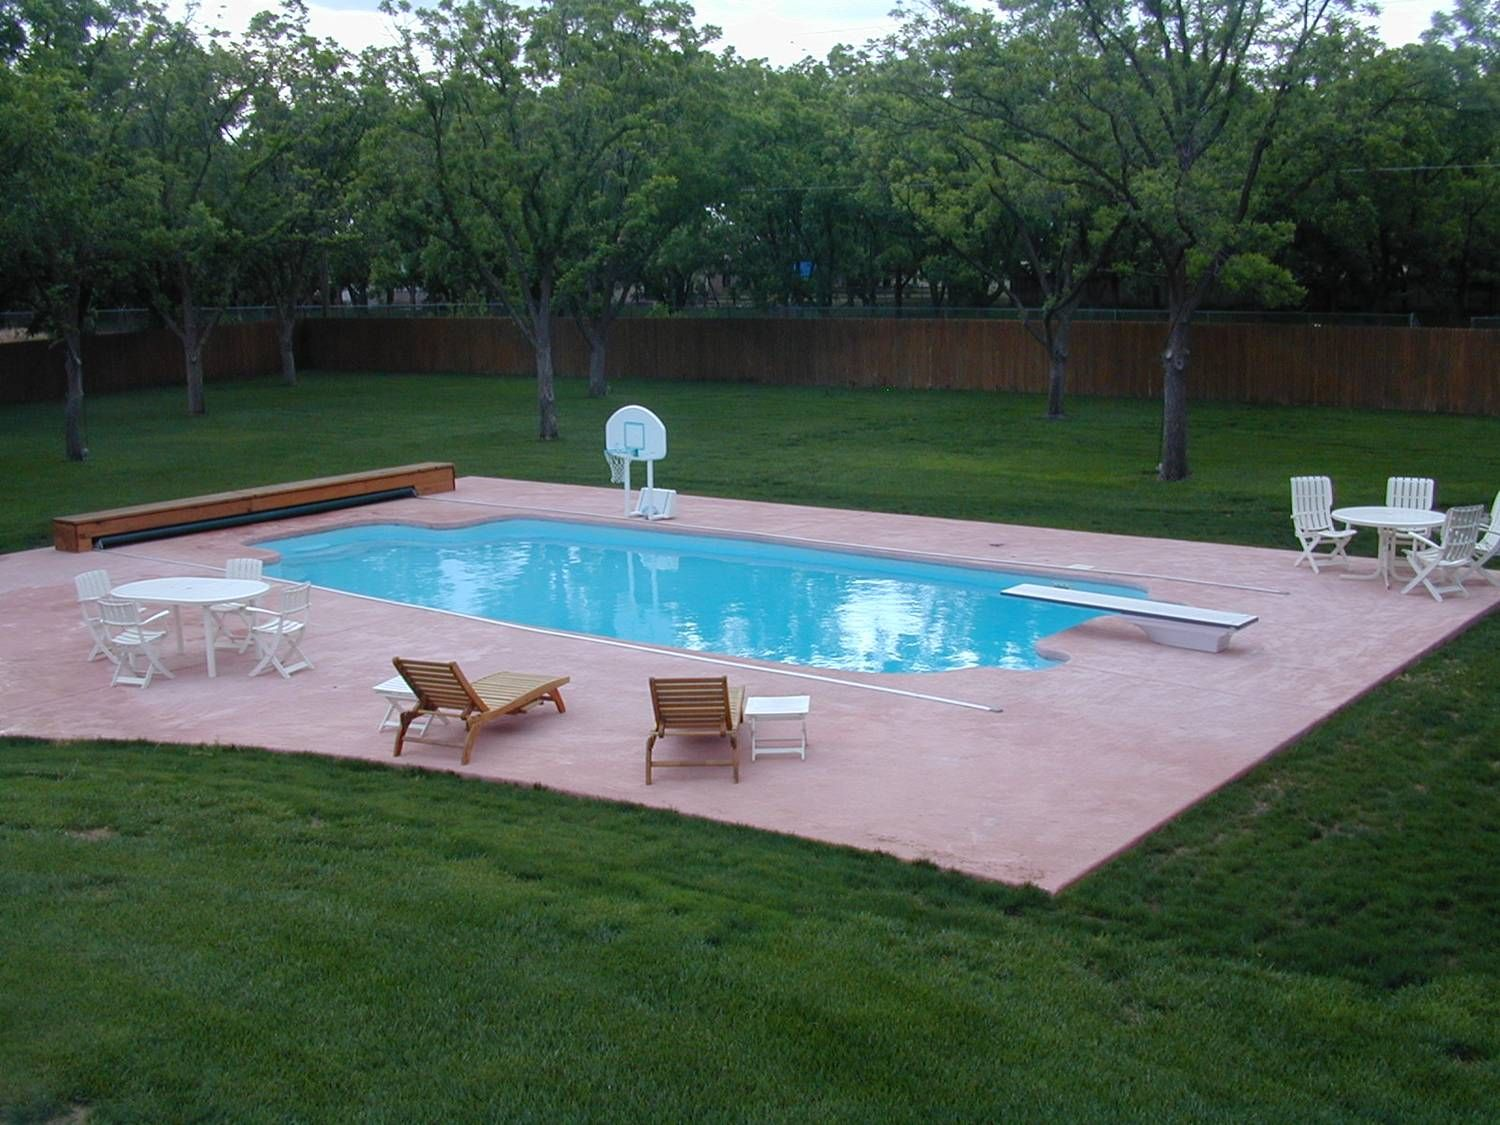 Swiming Pools Floating Pool Basketball With Wooden Loungers Also Stainless Outdoor Tables And Metal Patio